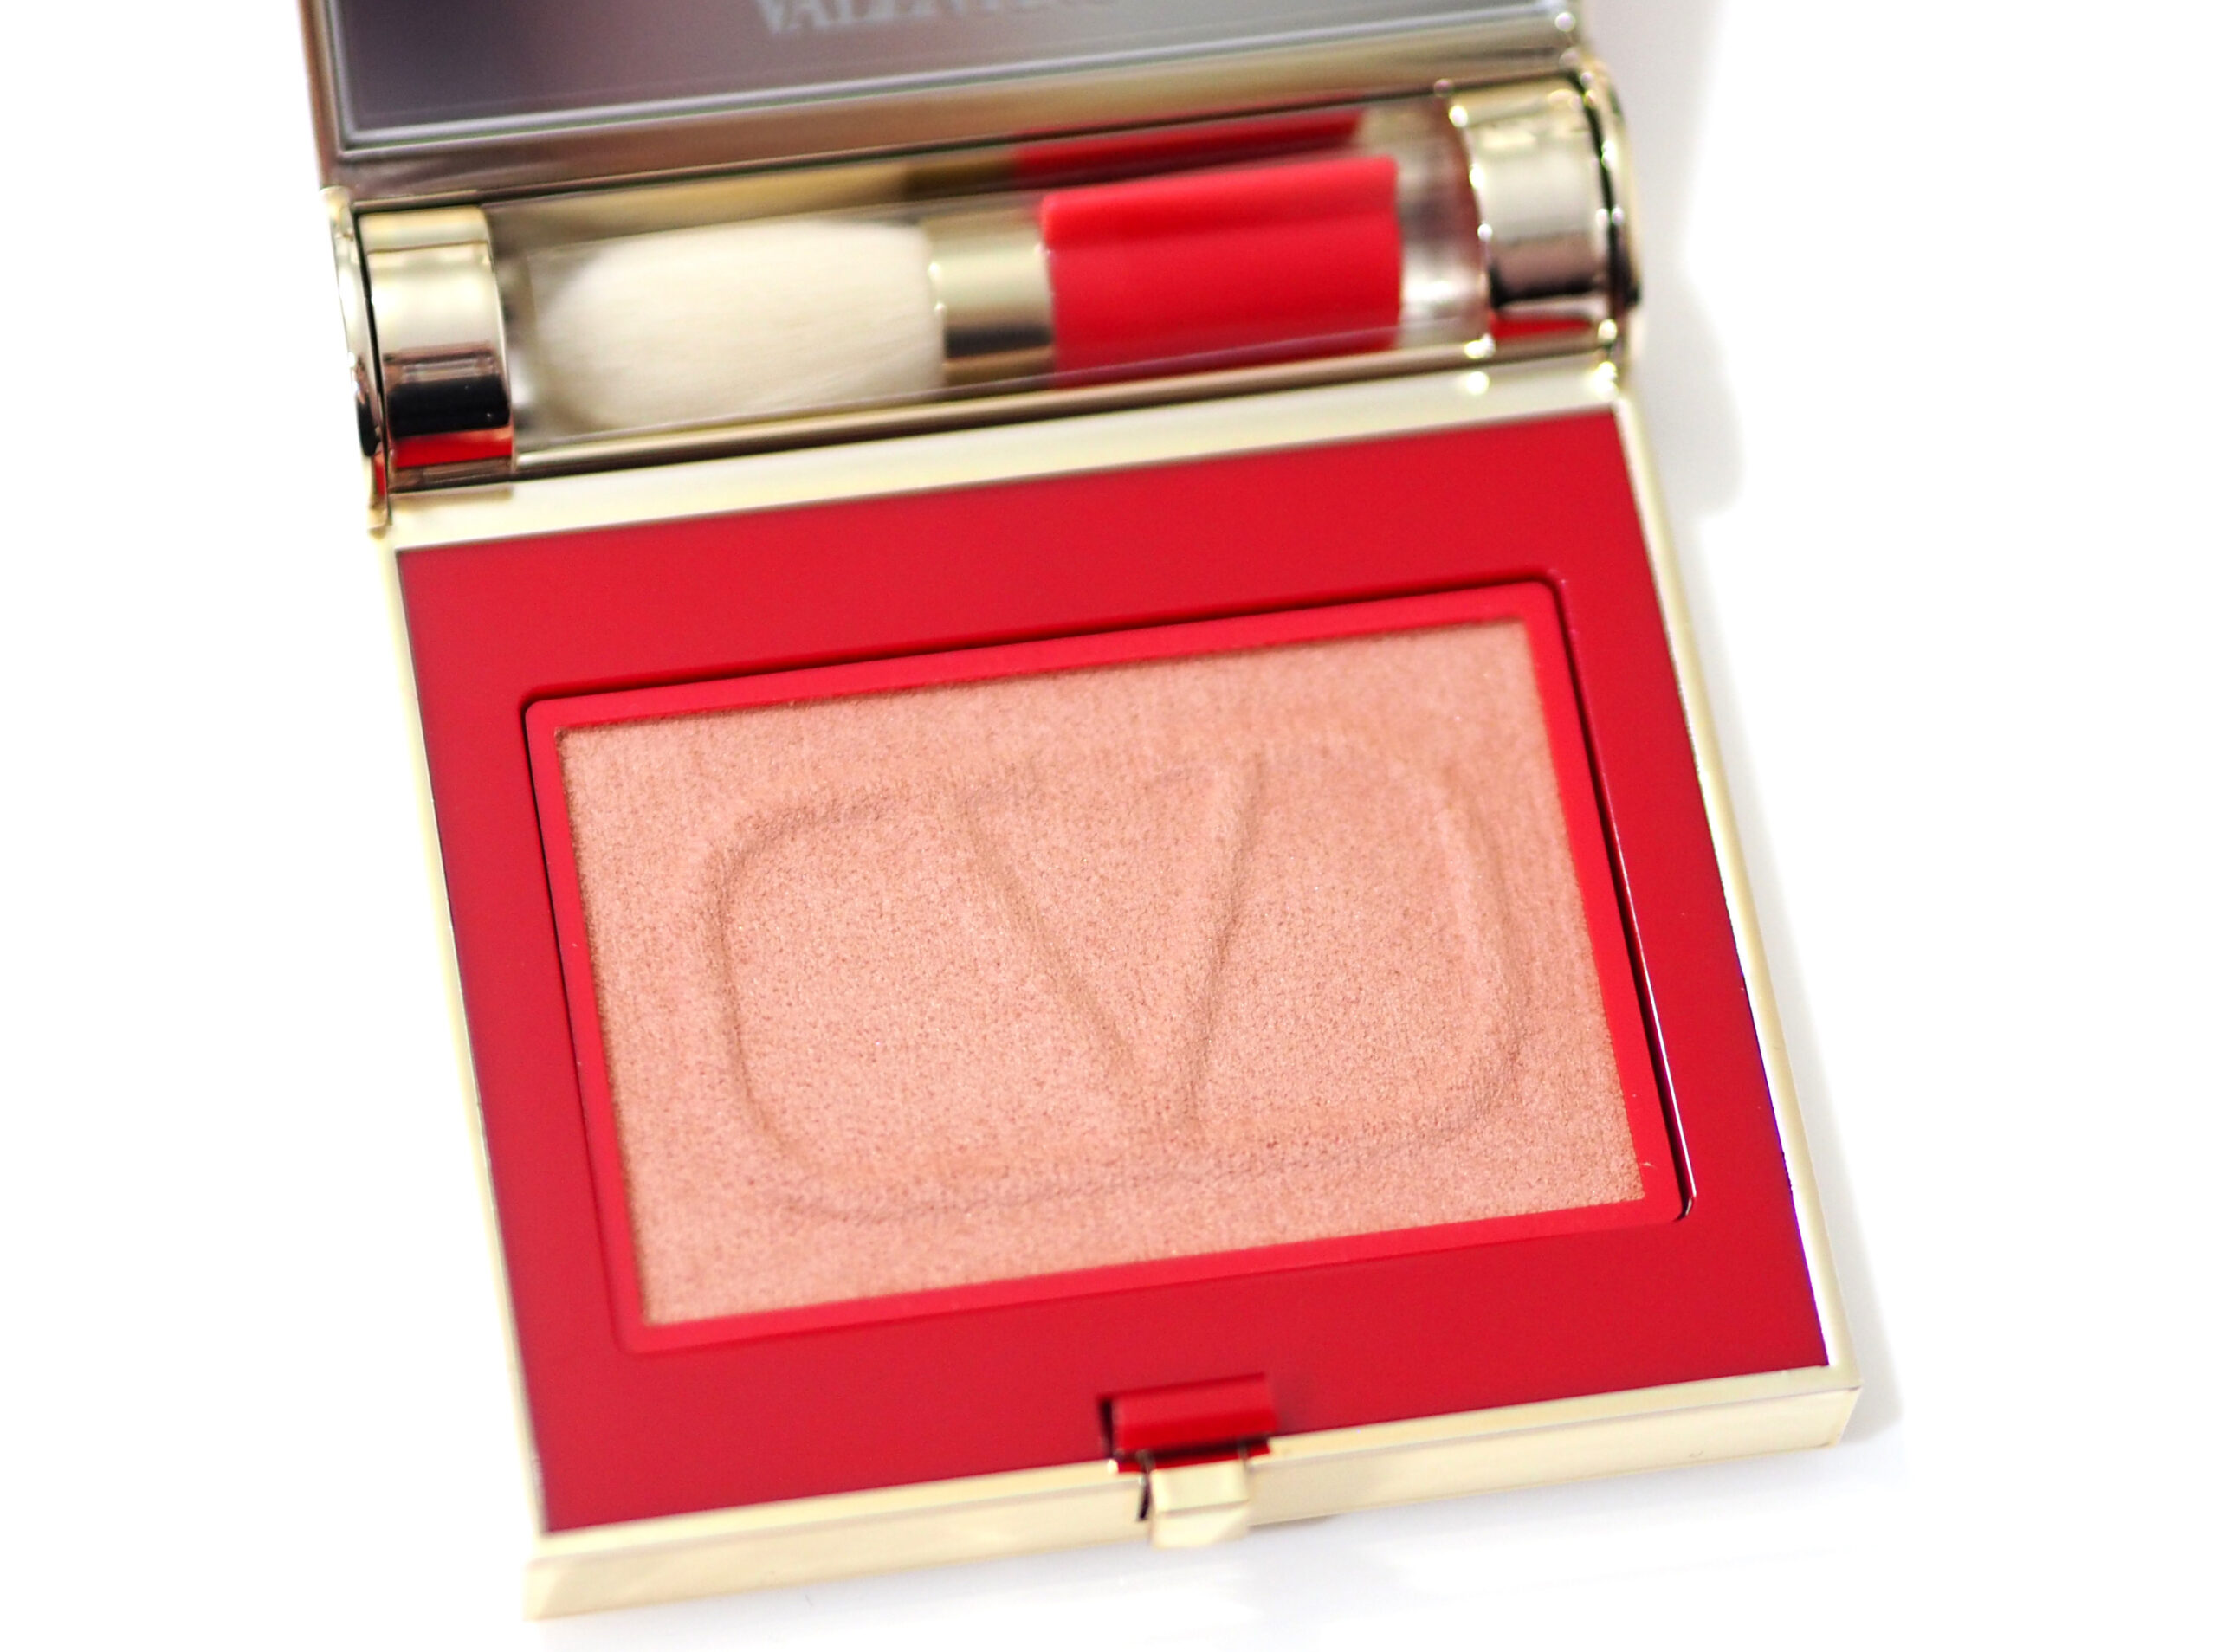 Valentino Beauty Eye2Cheek Dual Use Blush & Shadow Review / Swatches